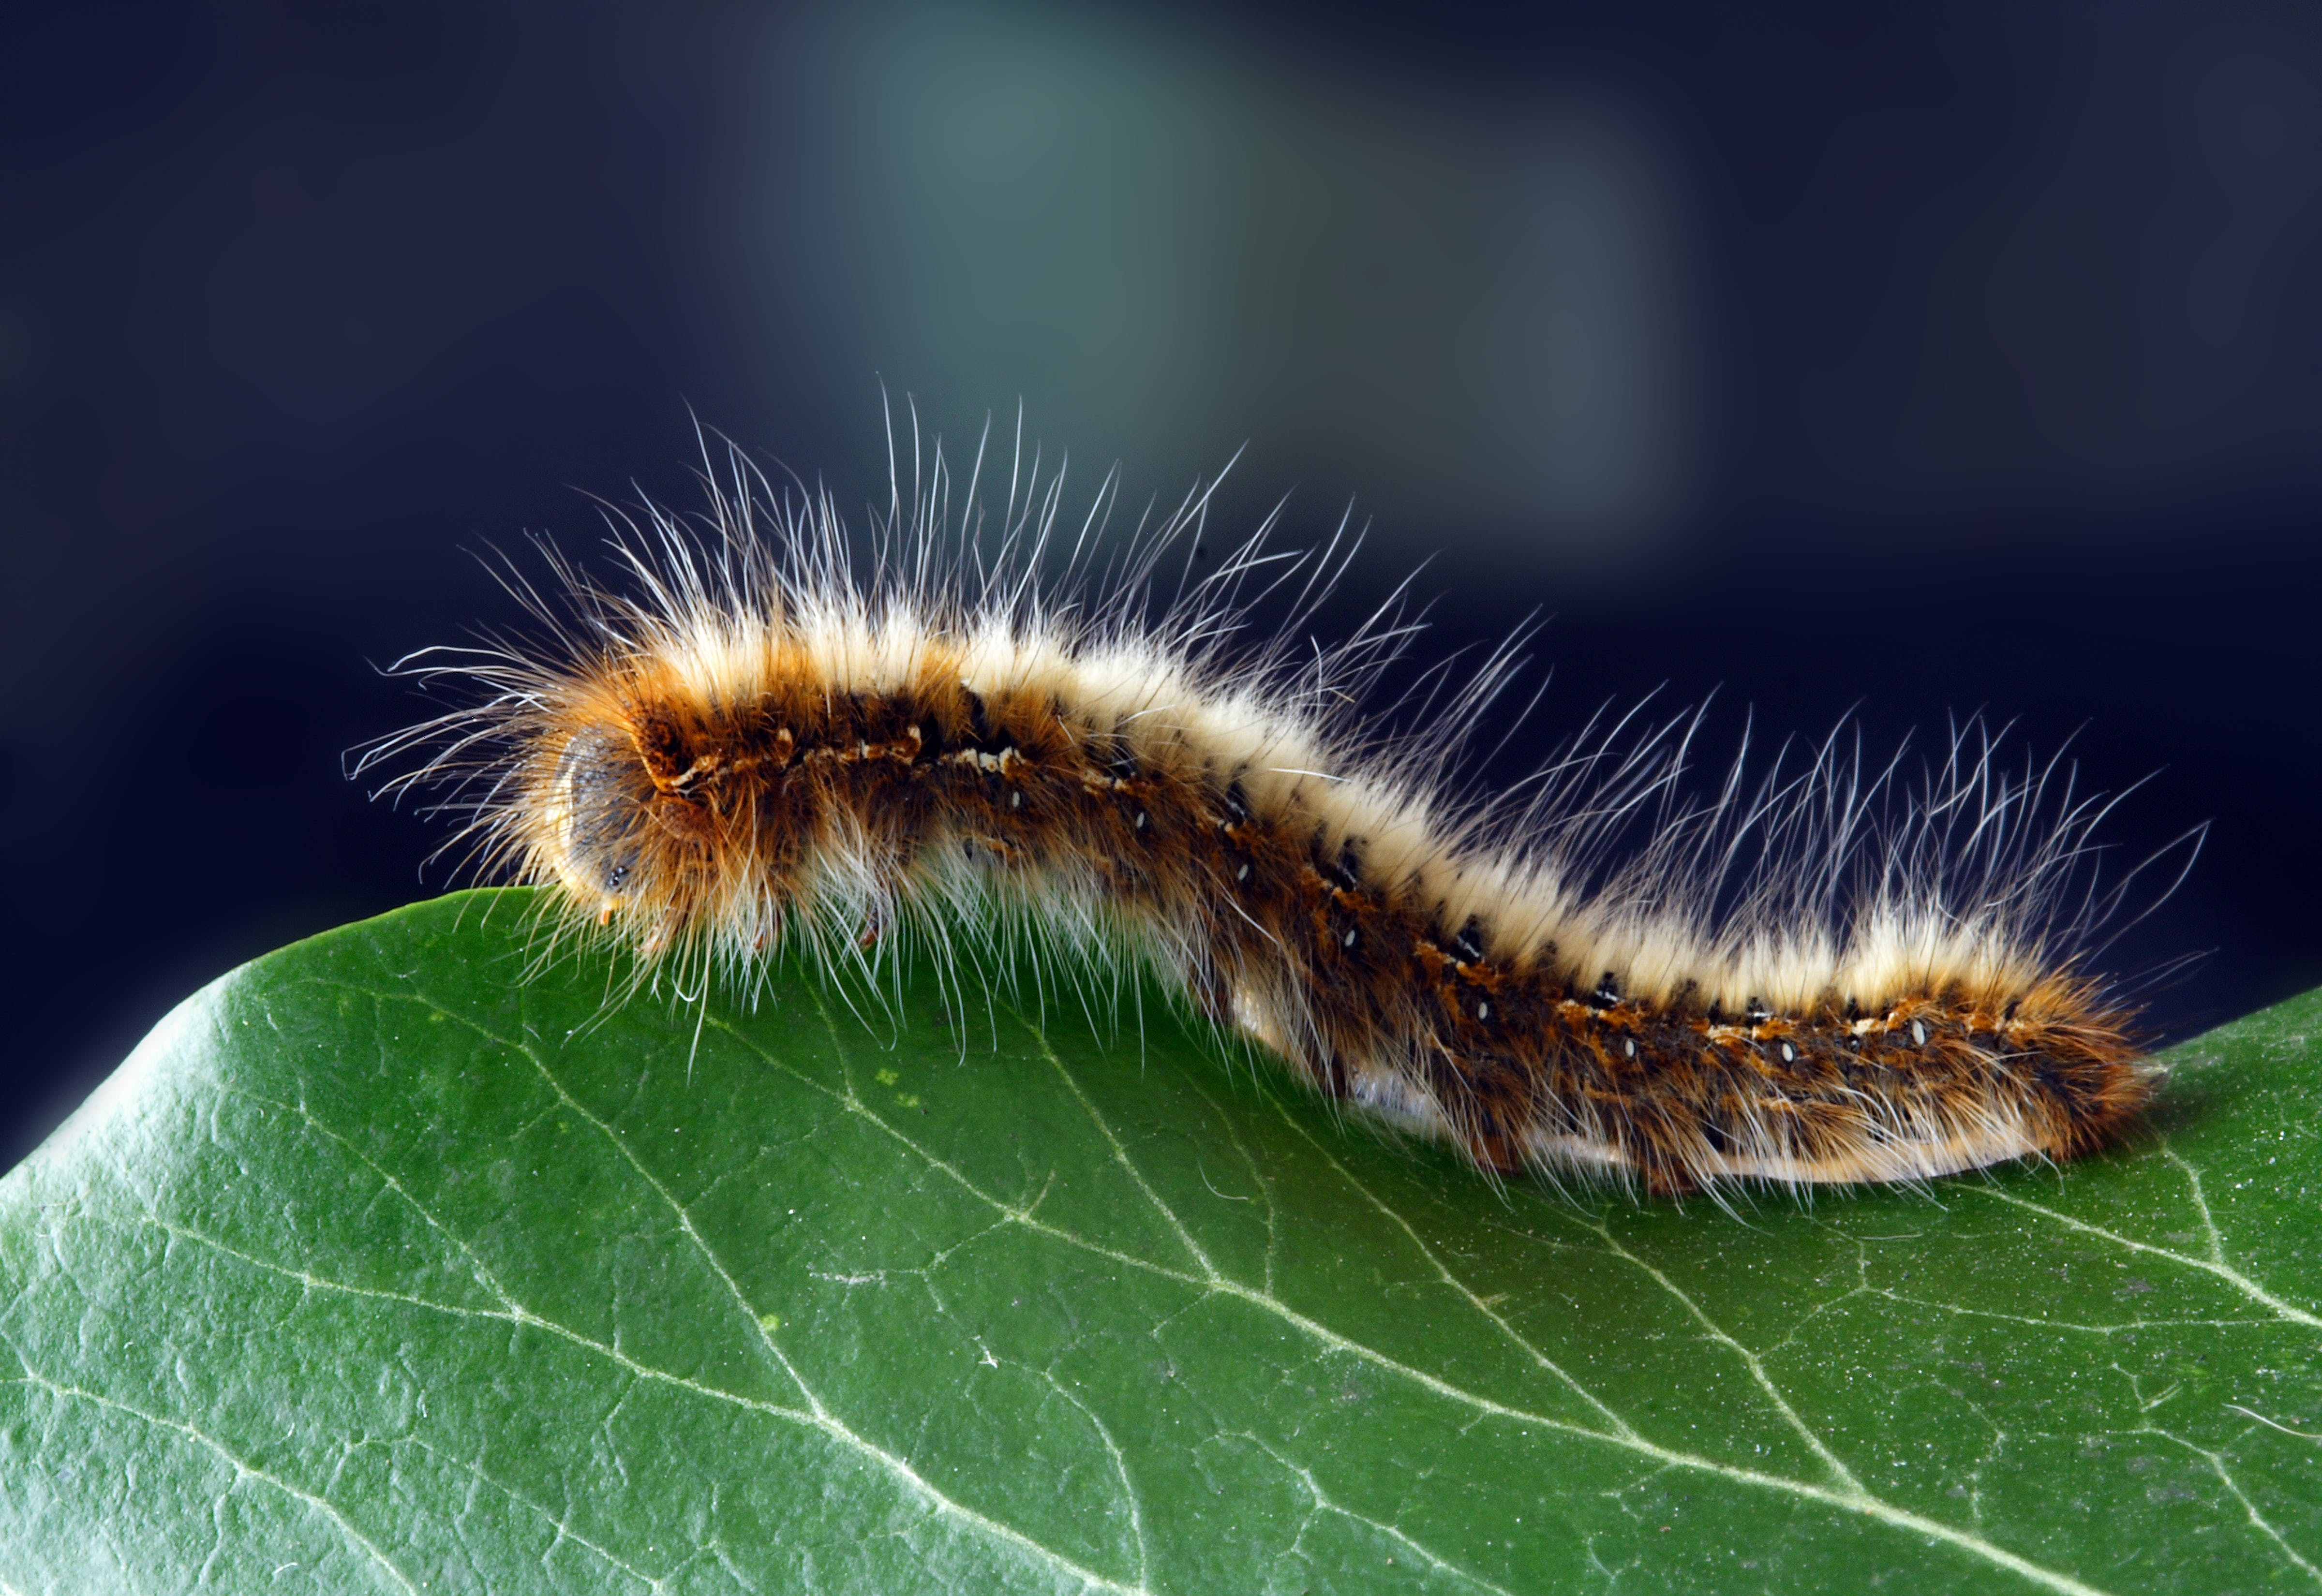 Close-up Photography of Black and Brown Moth Caterpillar